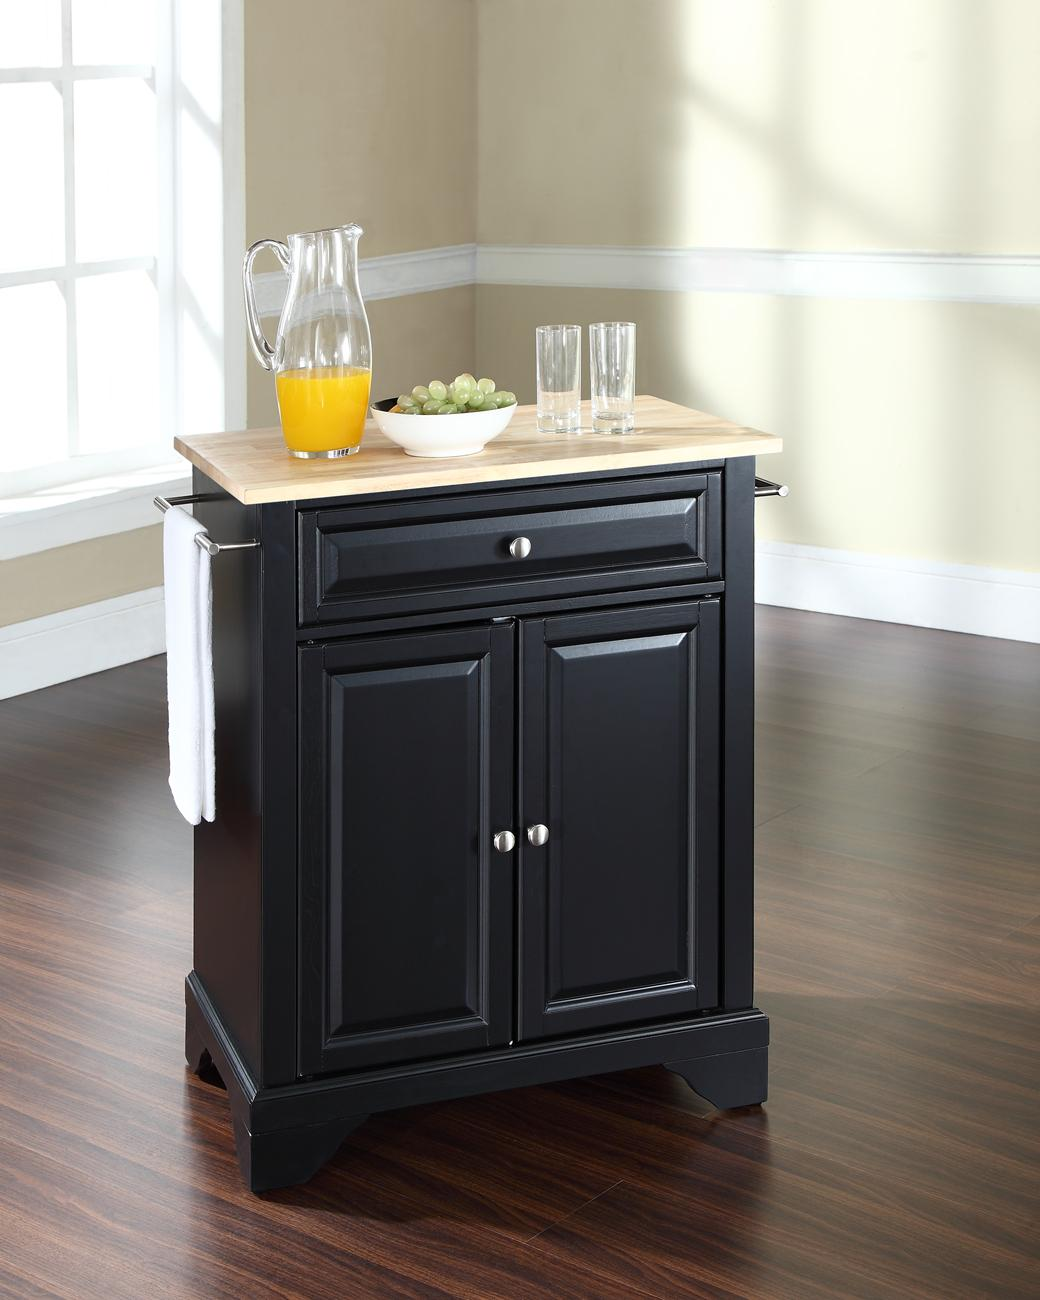 What Is A Kitchen Island With Pictures: Crosley LaFayette Portable Kitchen Island By OJ Commerce